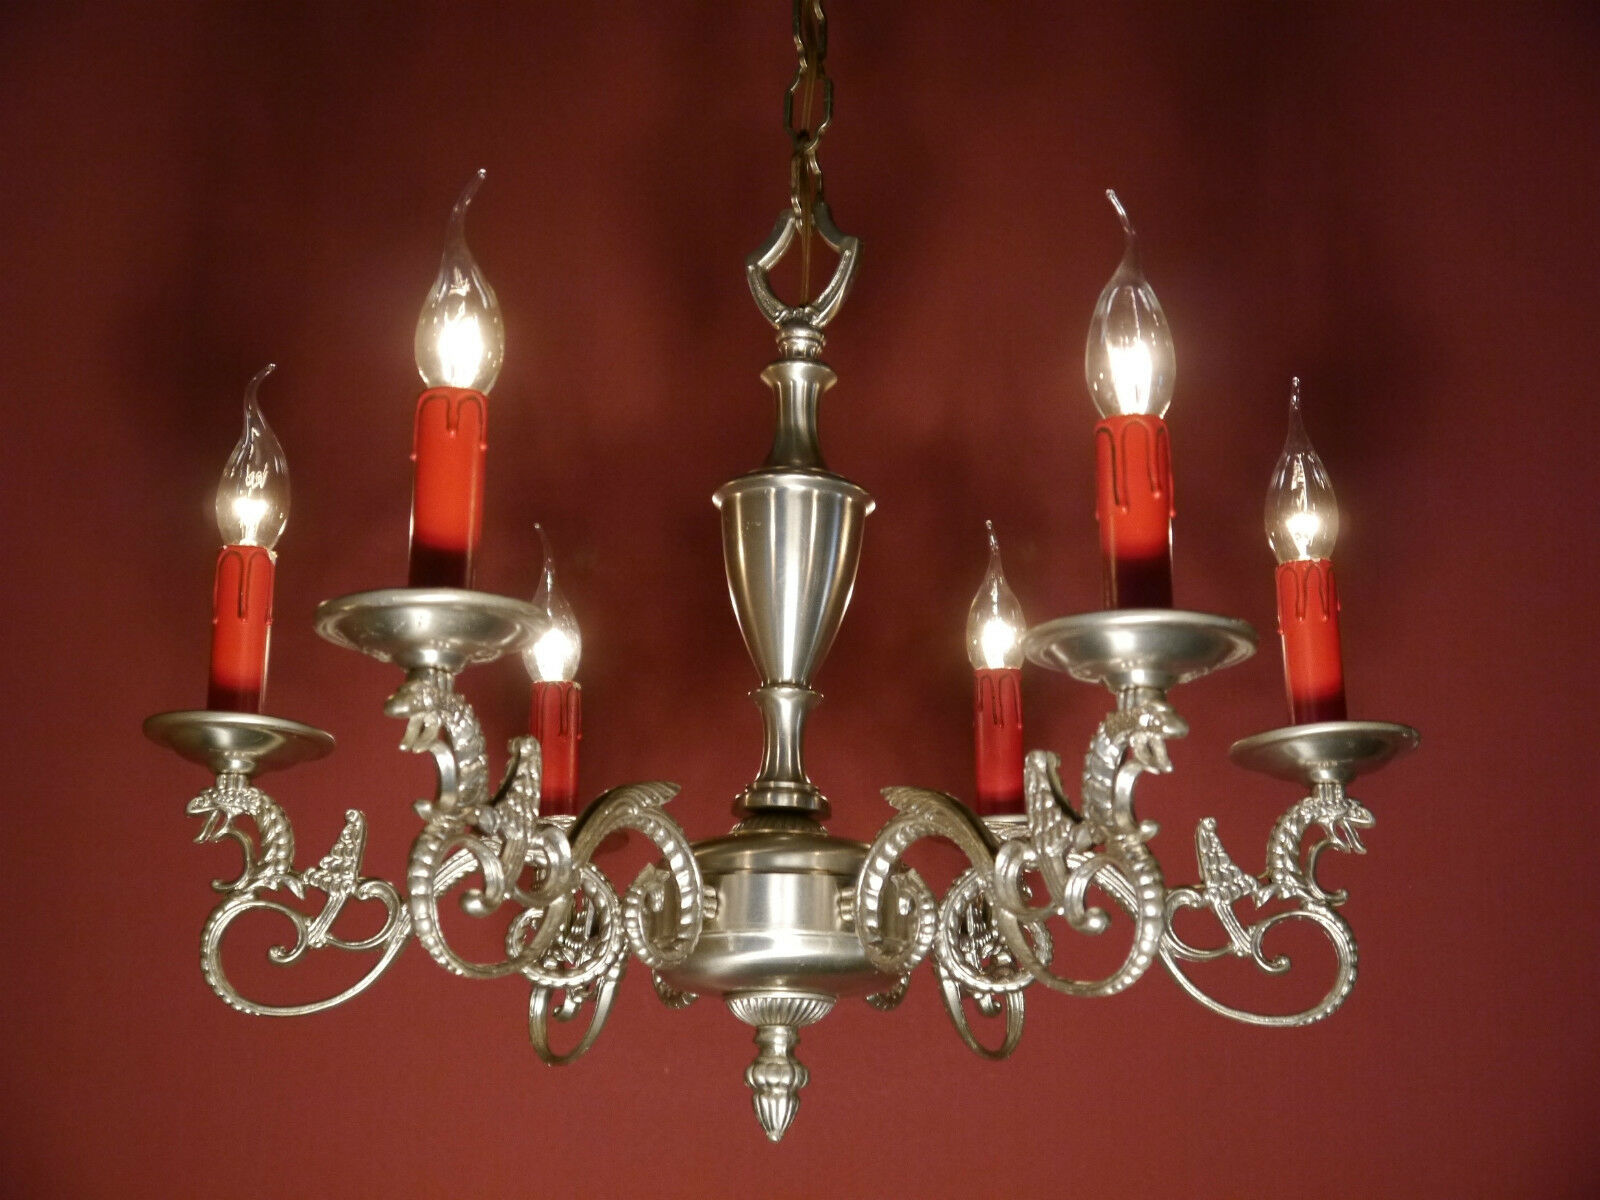 8 Light Dragon Chandelier Silver Vintage Lamp Antique Nickel Old French Ancient